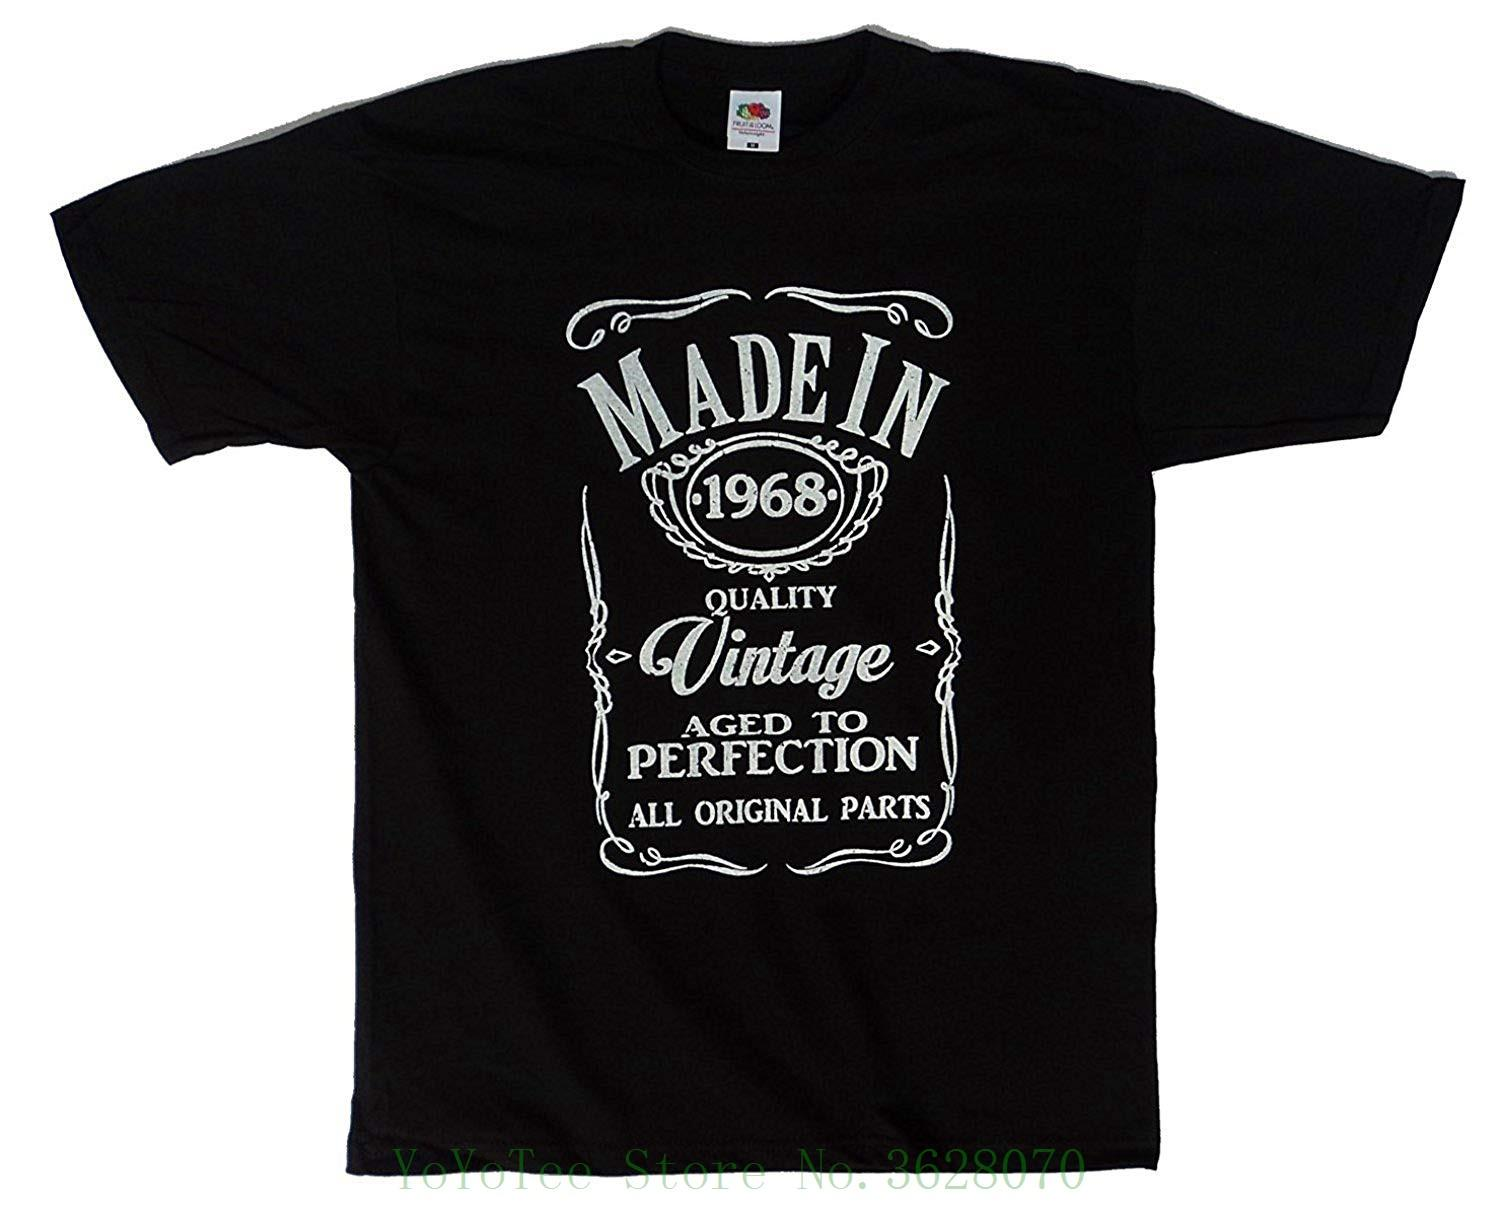 Designs Made In 1968 Quality Vintage Funny Mens 50th Birthday Gift Idea T Shirt Teenage Natural Cotton Printed